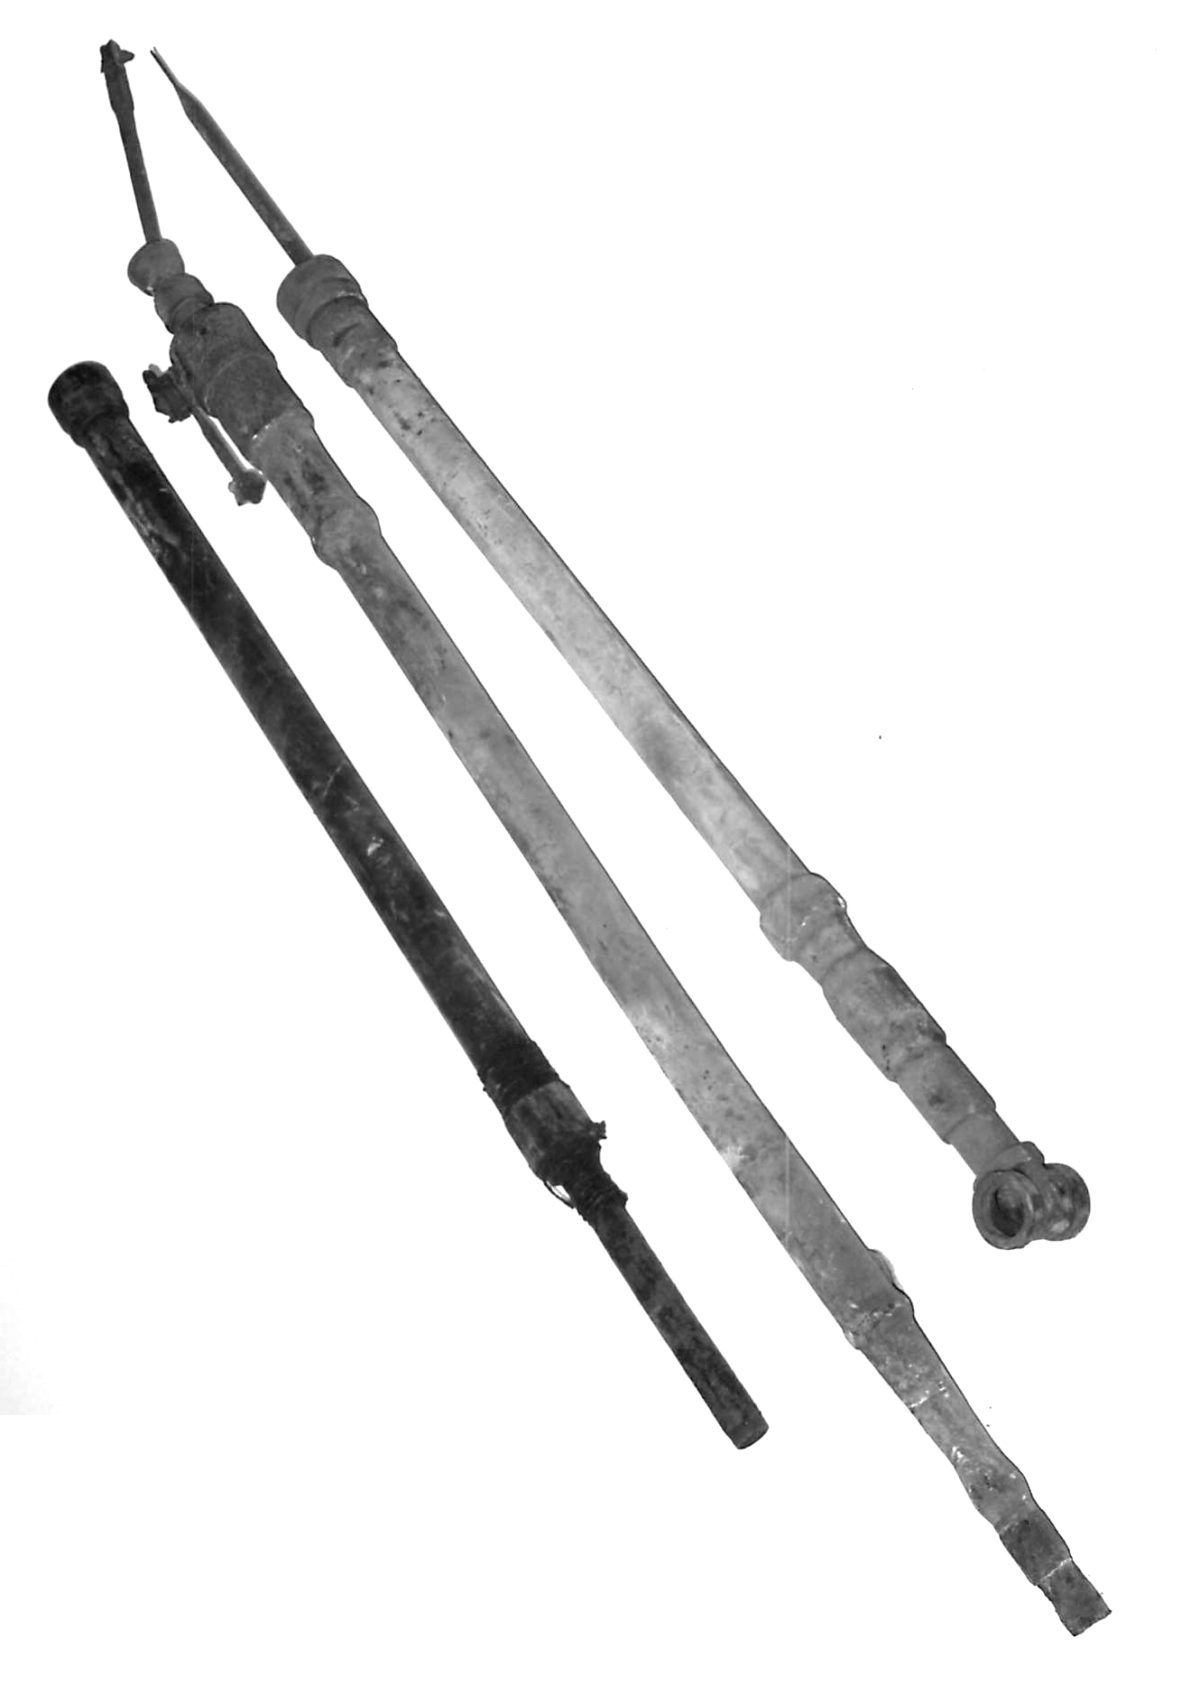 Salt making tools